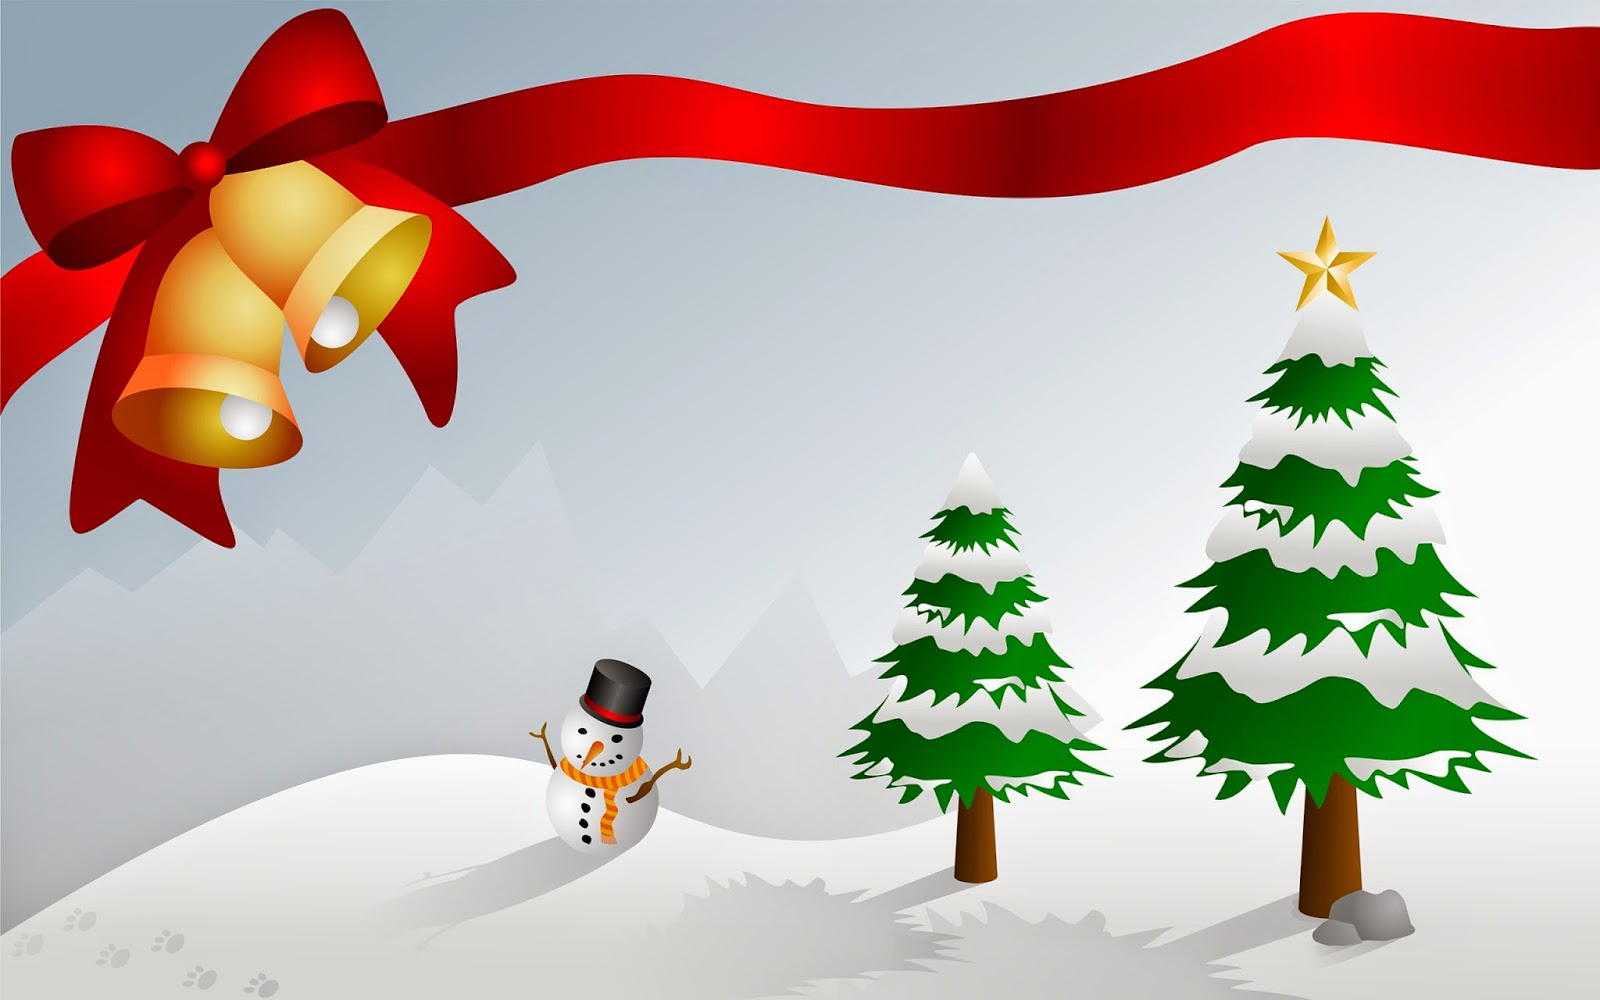 Christmas-animation-cartoon-image-with-snowman-jingle-bell-xmas-tree-2560x1600.jpg